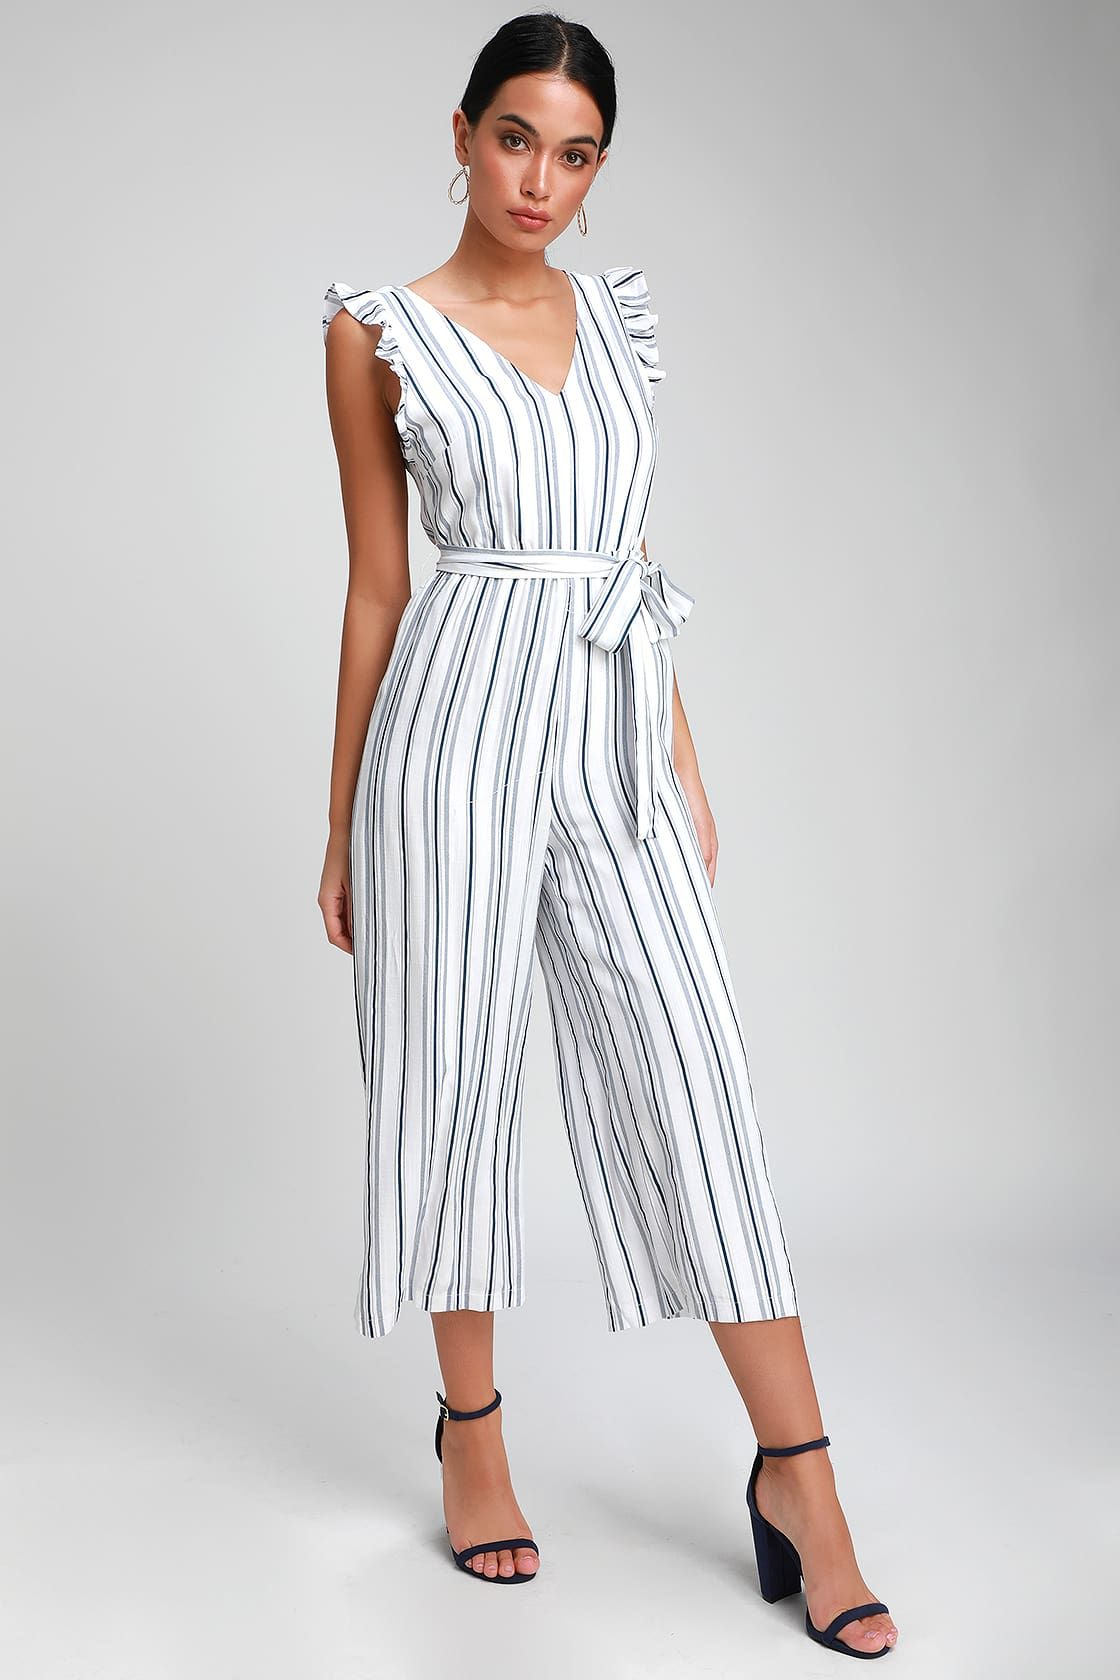 brand new super specials wholesale Cape Cod Cutie Navy Blue and White Striped Jumpsuit | Striped ...